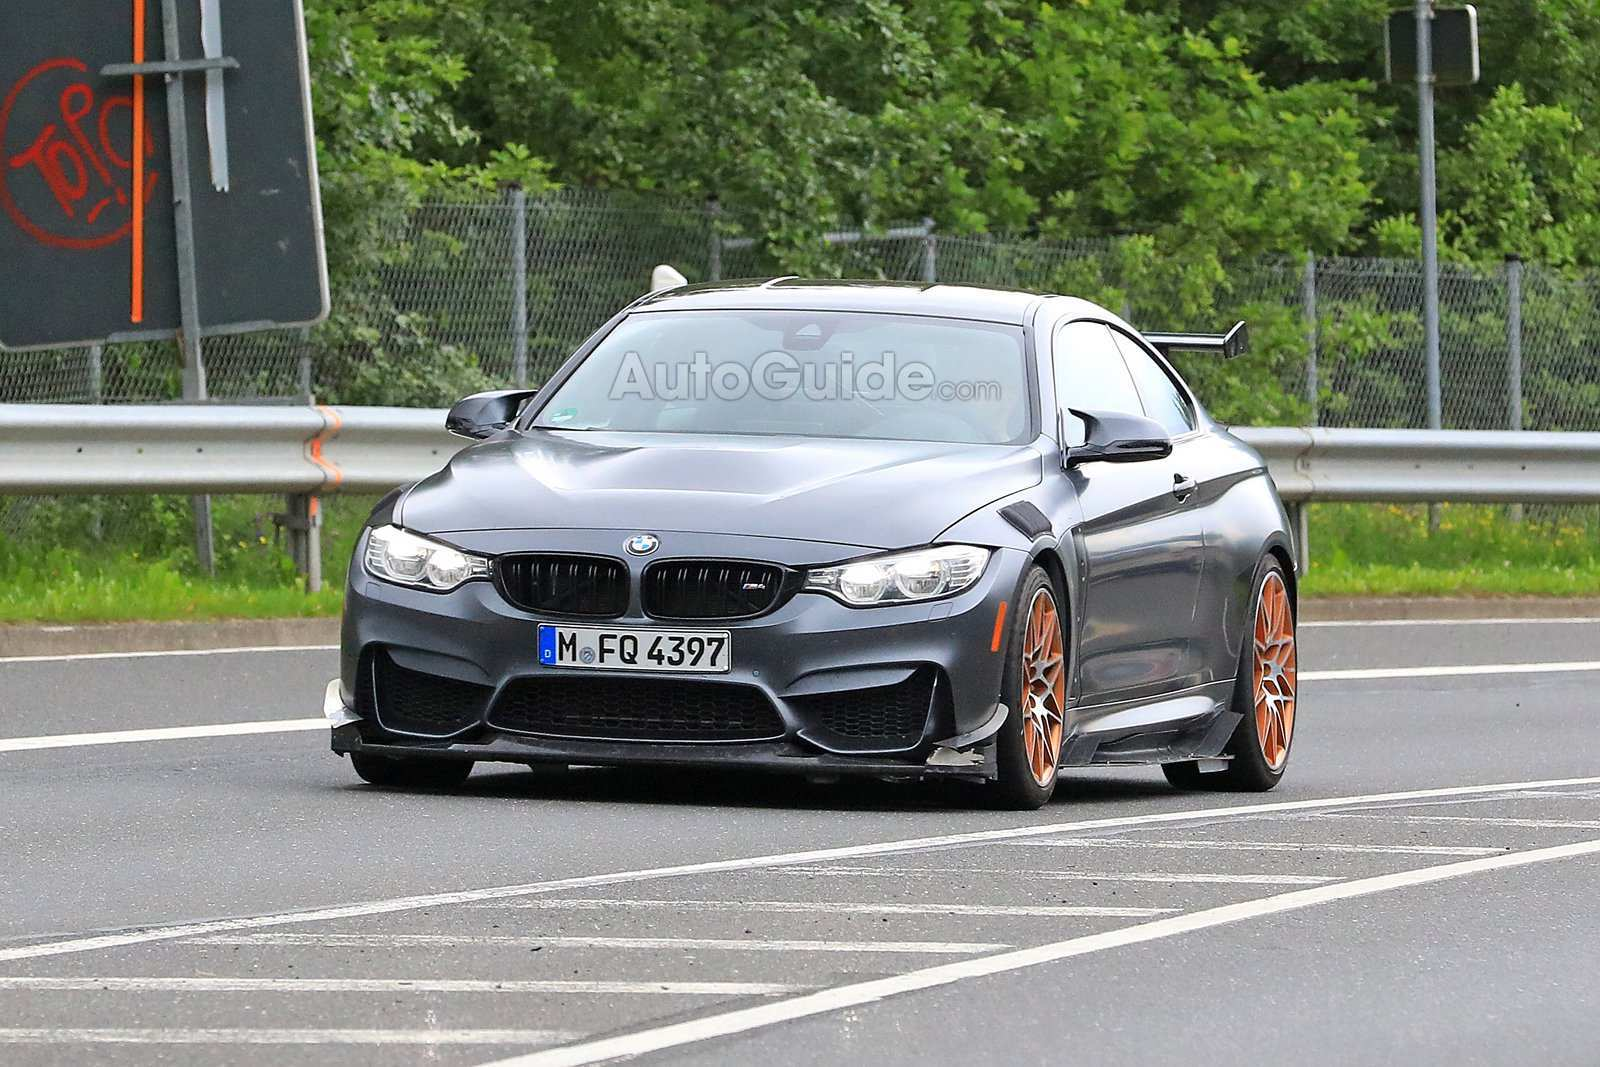 33 The Best 2020 BMW M4 Gts Price And Release Date